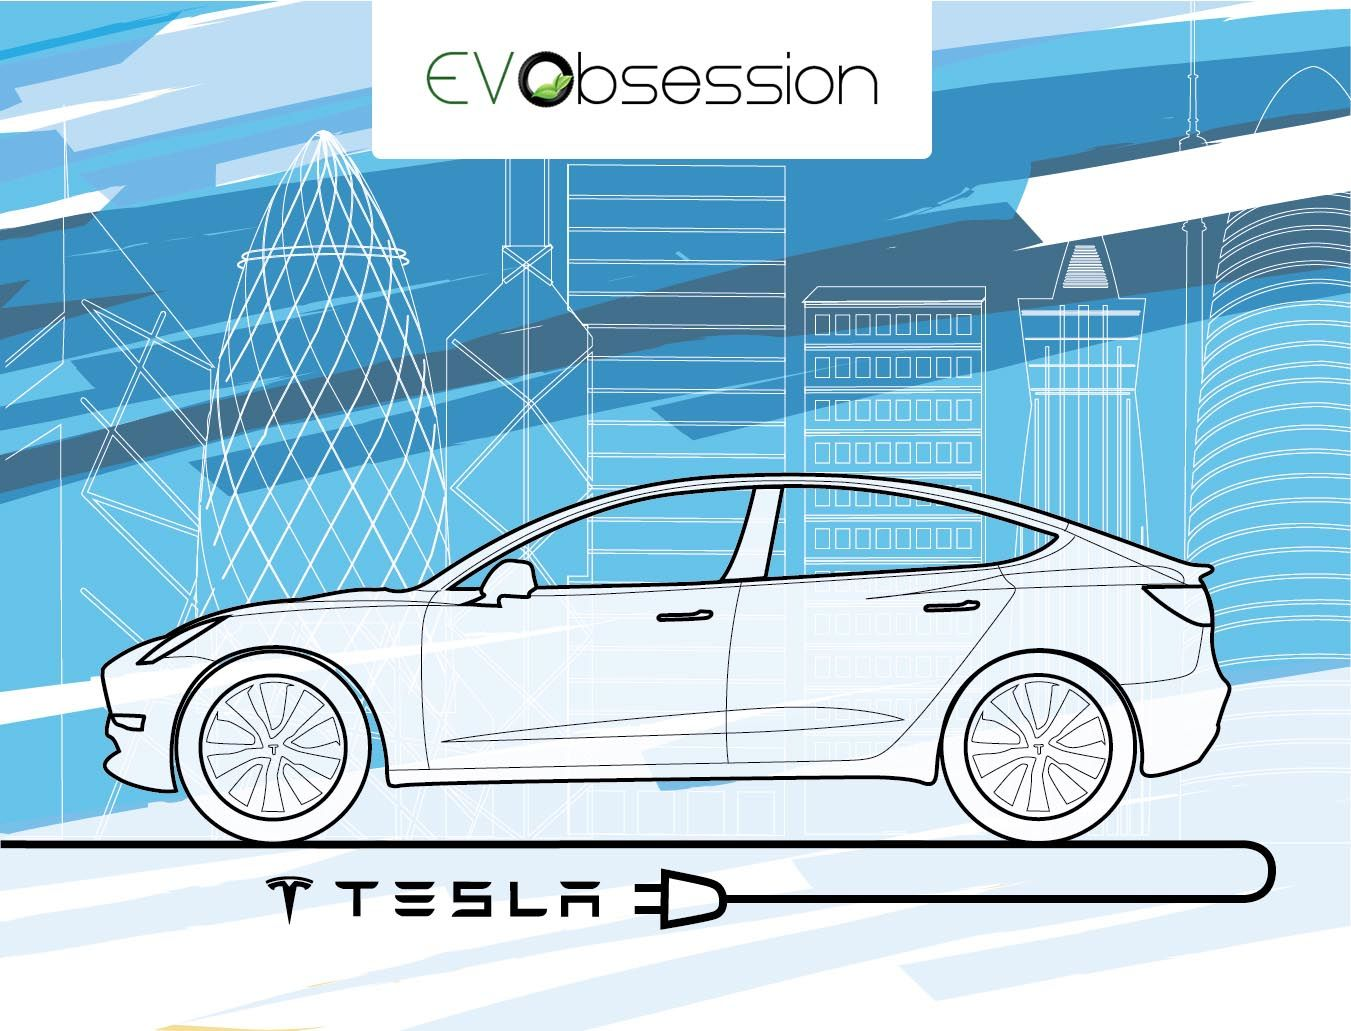 Panasonic Expecting Strong Demand For Tesla's Products To